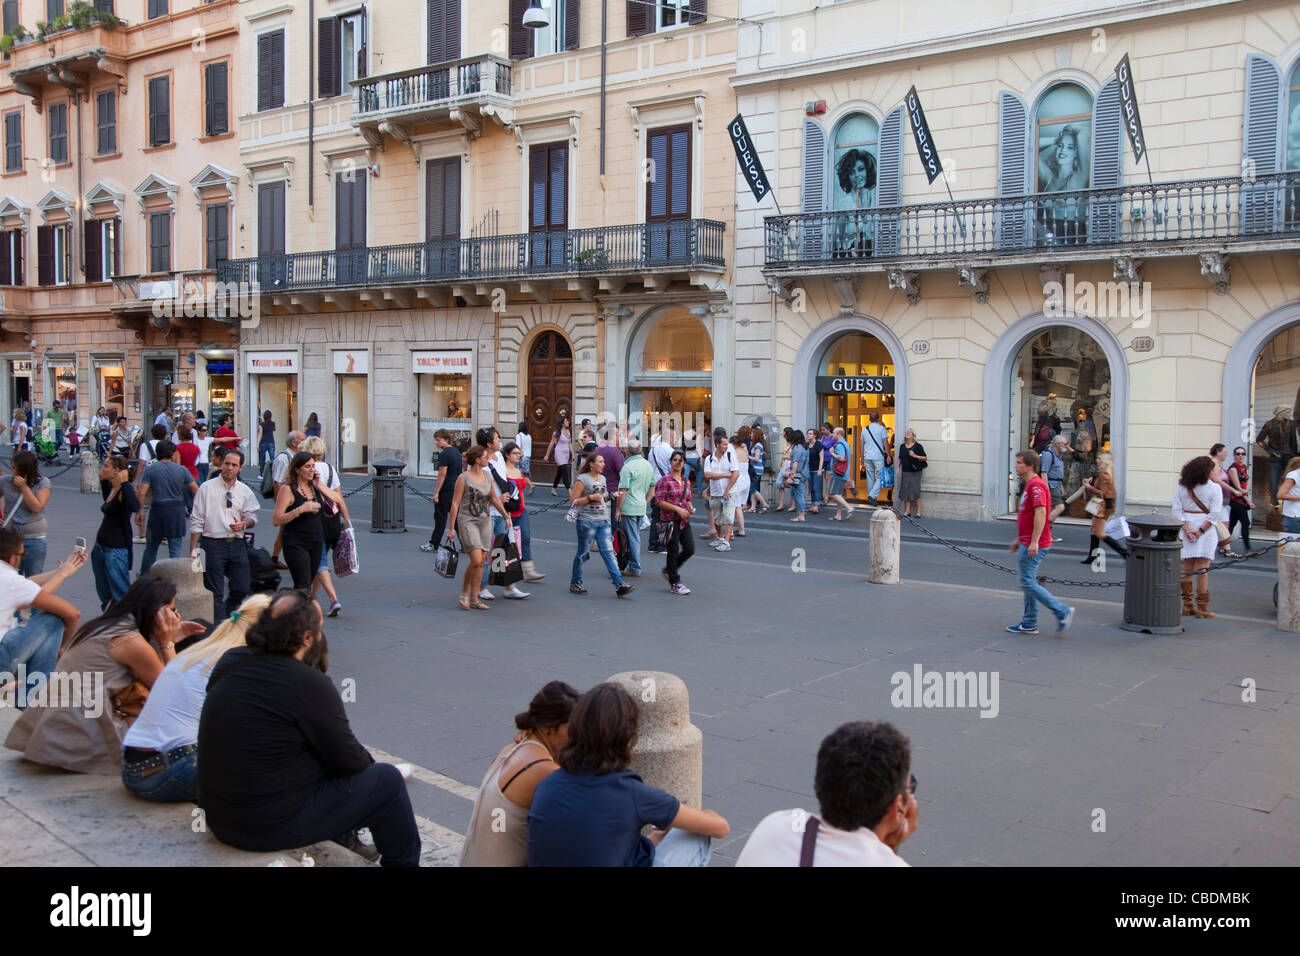 596ab6276320 People Shopping on Via del Corso Street in Rome